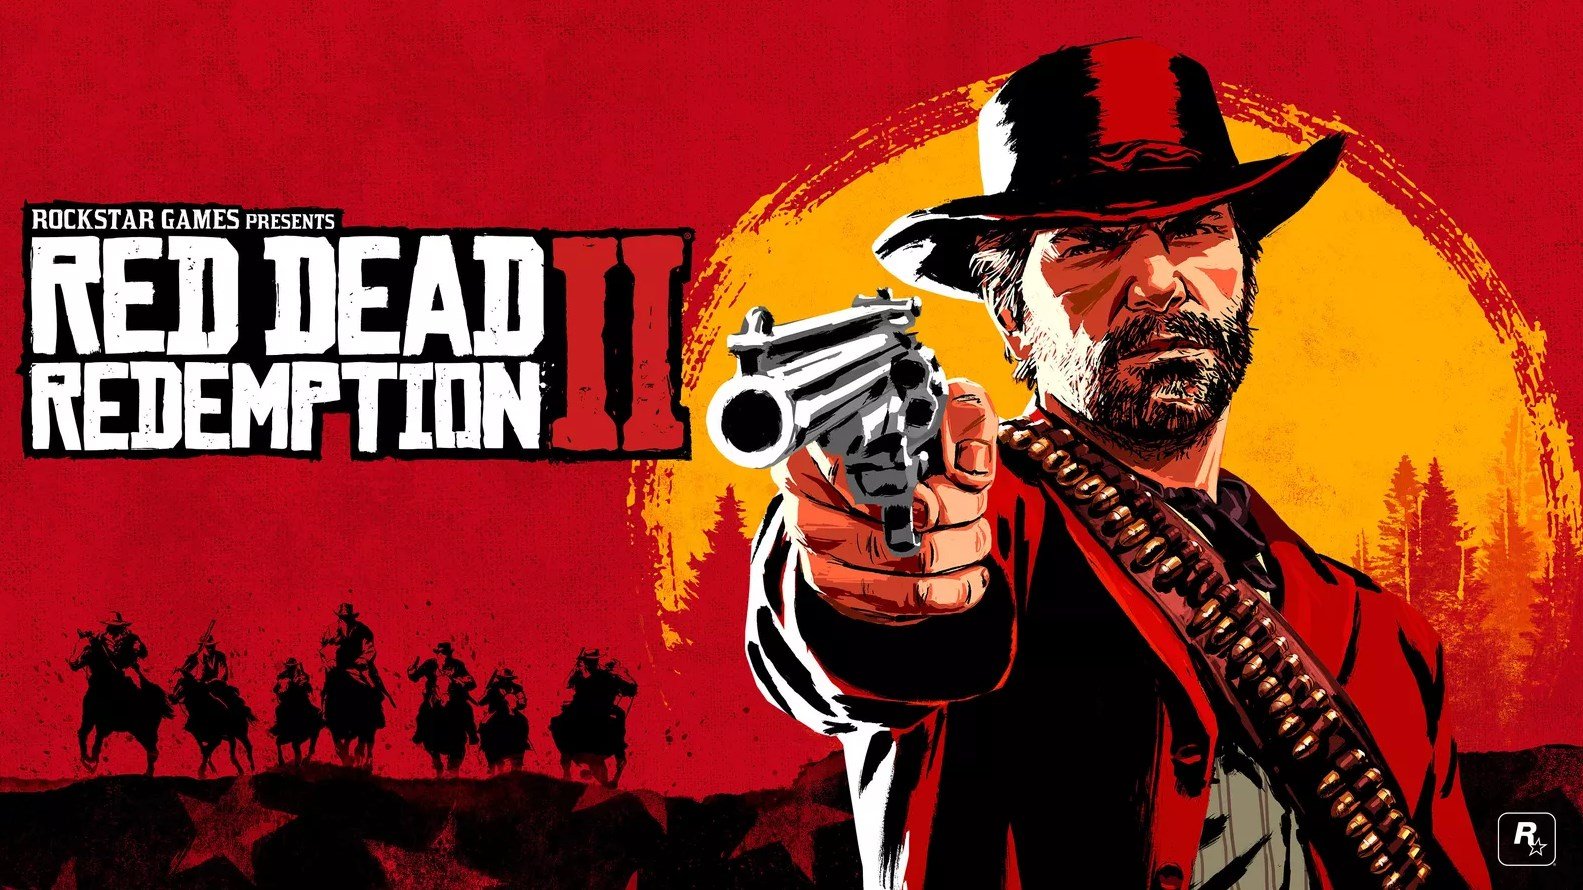 Microsoft confirmó que Red Dead Redemption 2 estará disponible en Xbox Game Pass